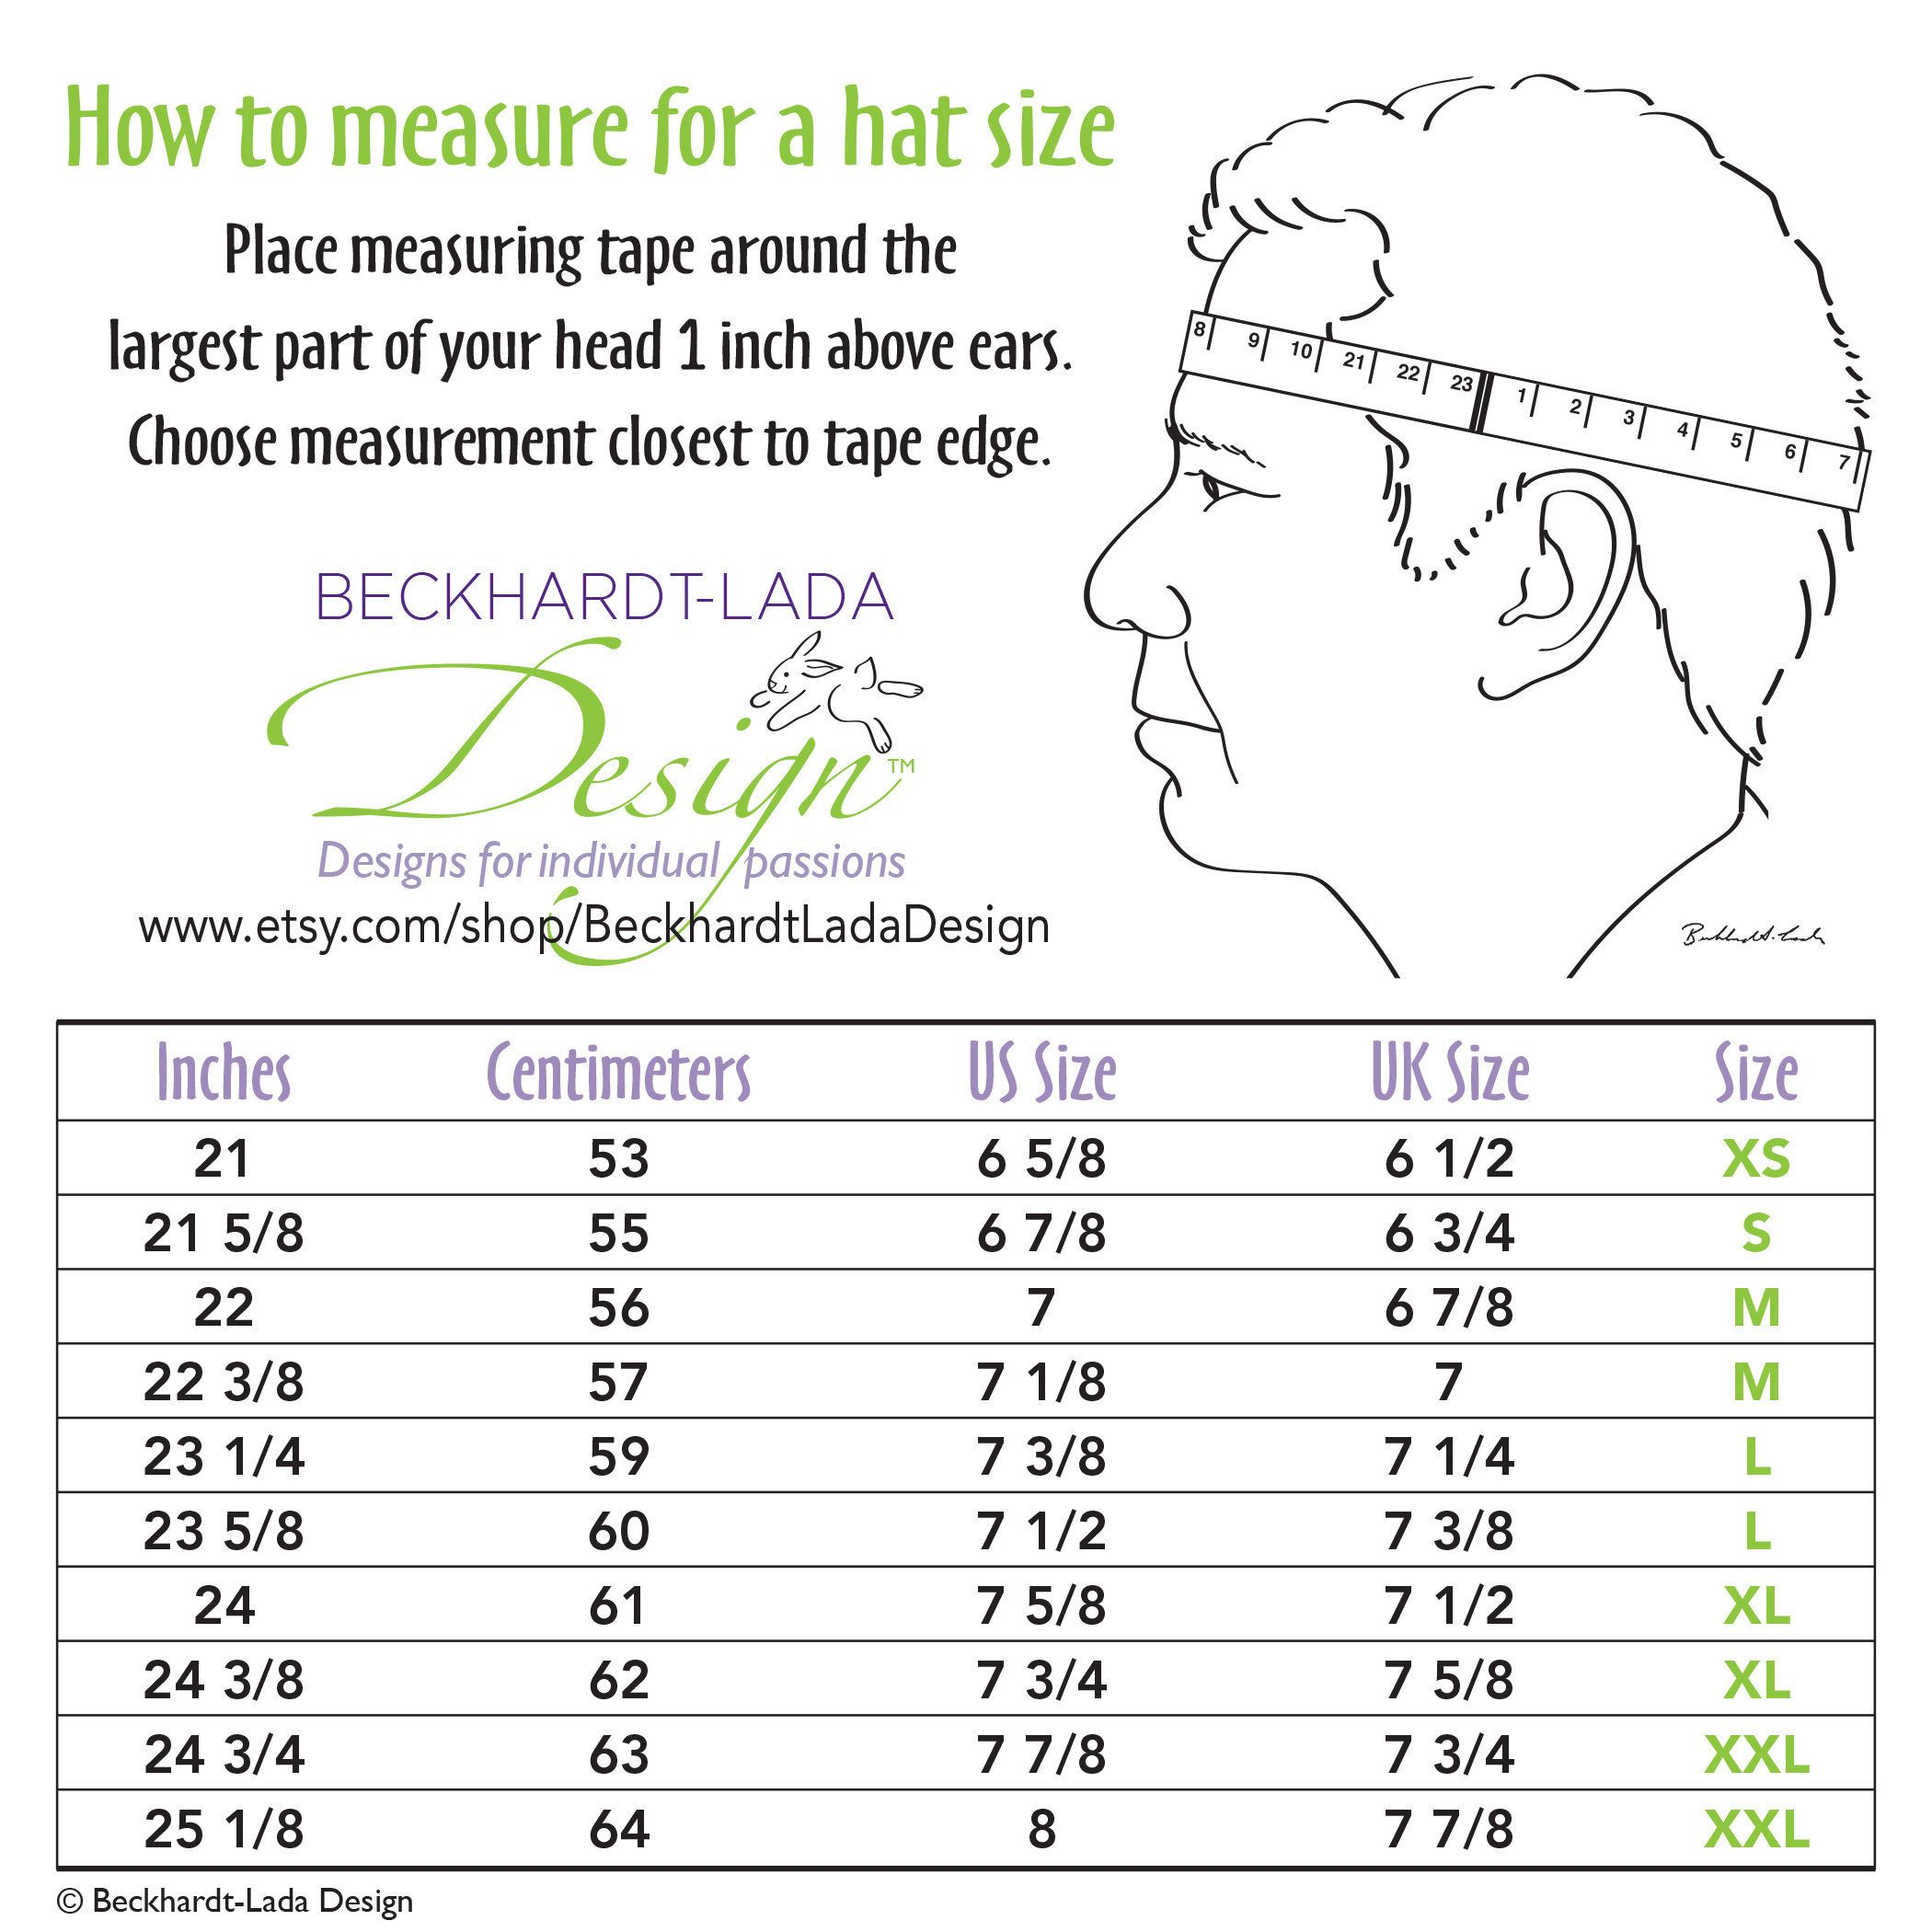 Here S A Helpful Head Measuring Chart To Figure Out Your Proper Hat Size Us Uk Whole Number Sizes Are Fine Hatchart Hats Hat Sizes Hanukkah Bush Teachers